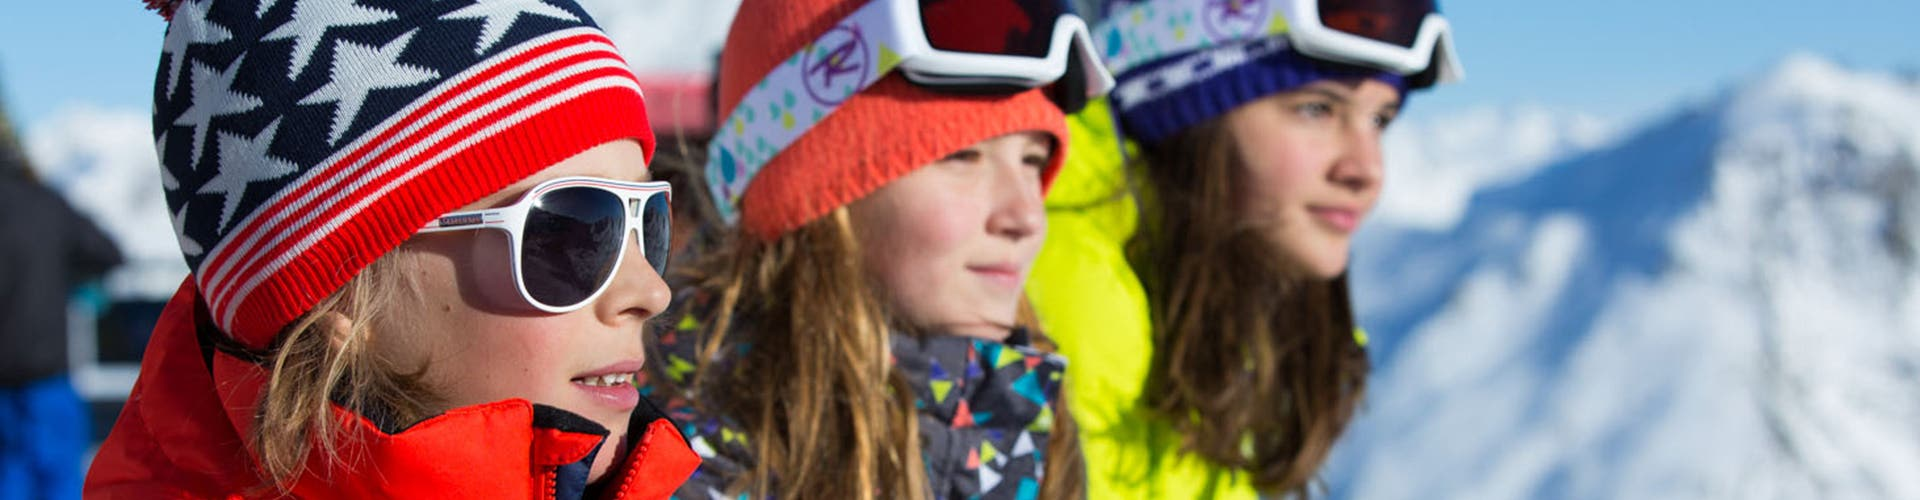 Ski accessories - 8 to 16 years old